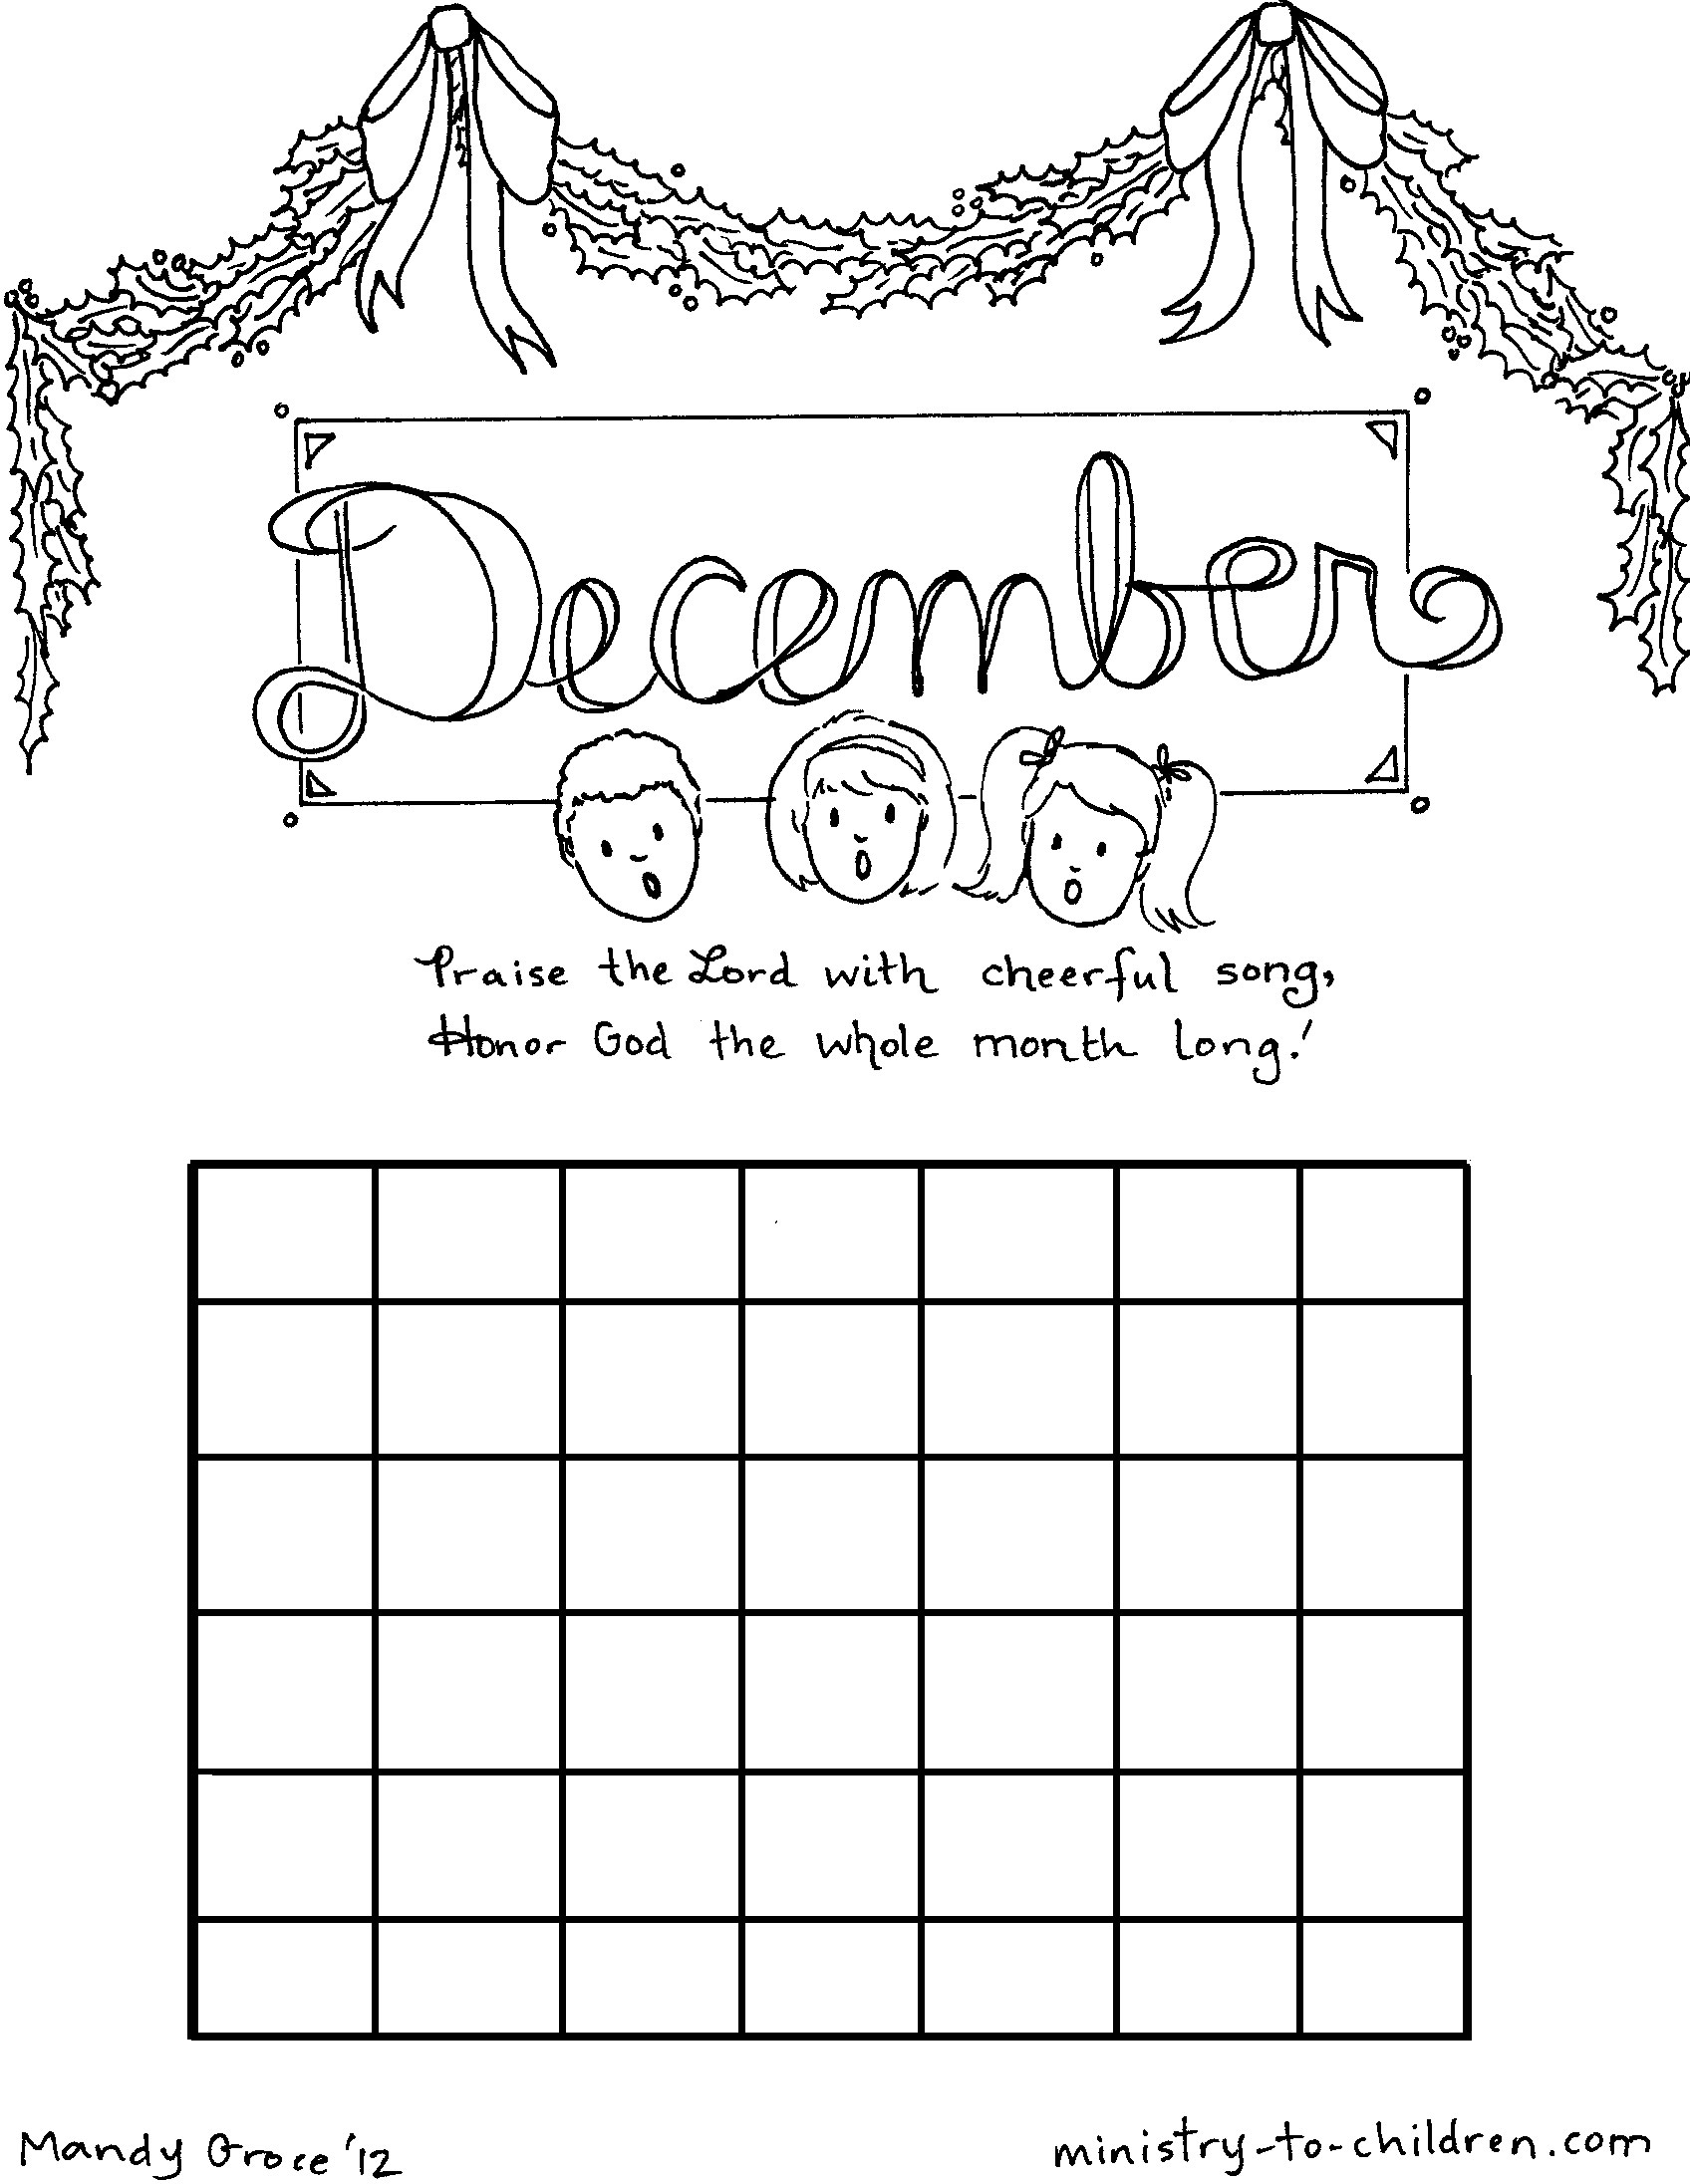 Monthly Calendar Coloring Pages Download And Print For Free